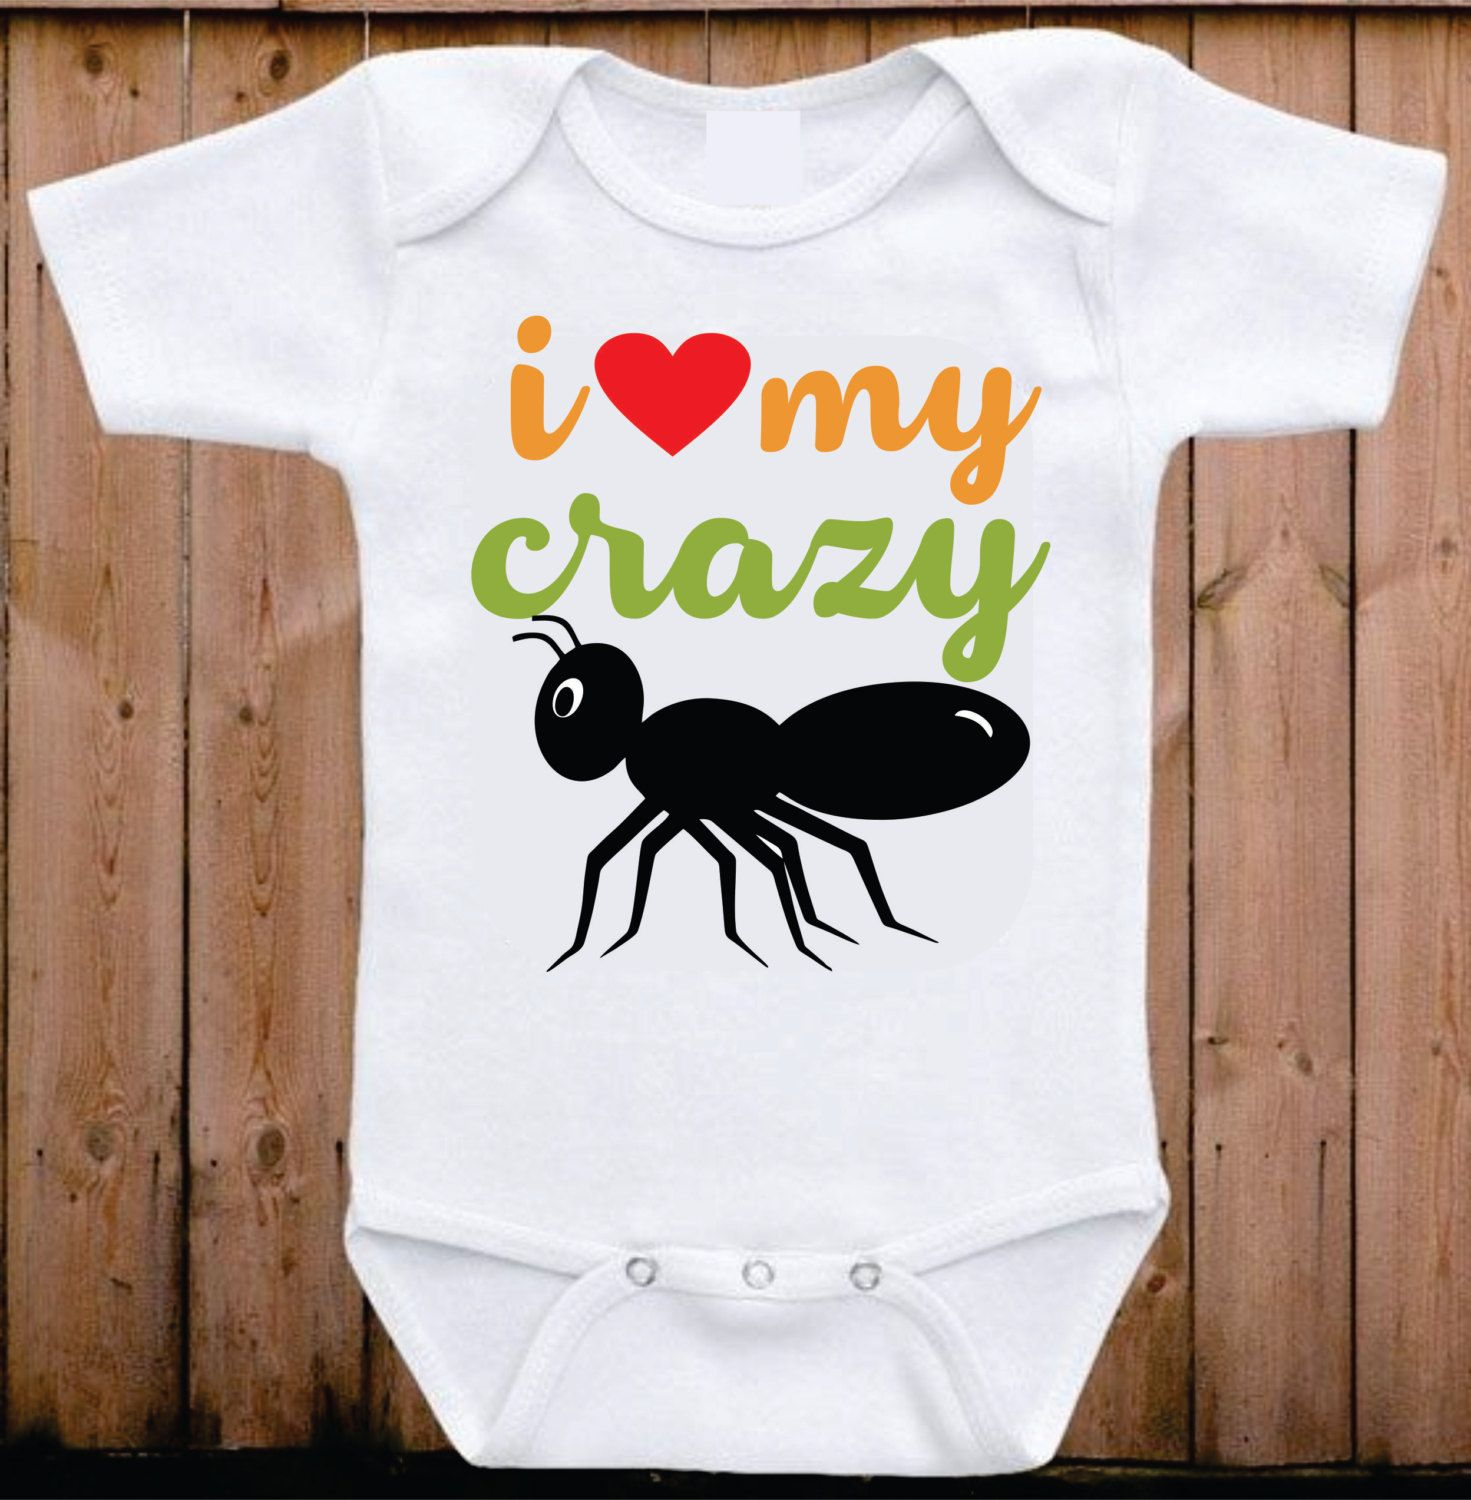 a90d6233 I love my crazy Aunt baby onesie My Aunt loves me I love my Aunt onesie  Auntie Shirt Funny Onesie Baby shower gift Unisex baby clothing by  mkclassyprints on ...